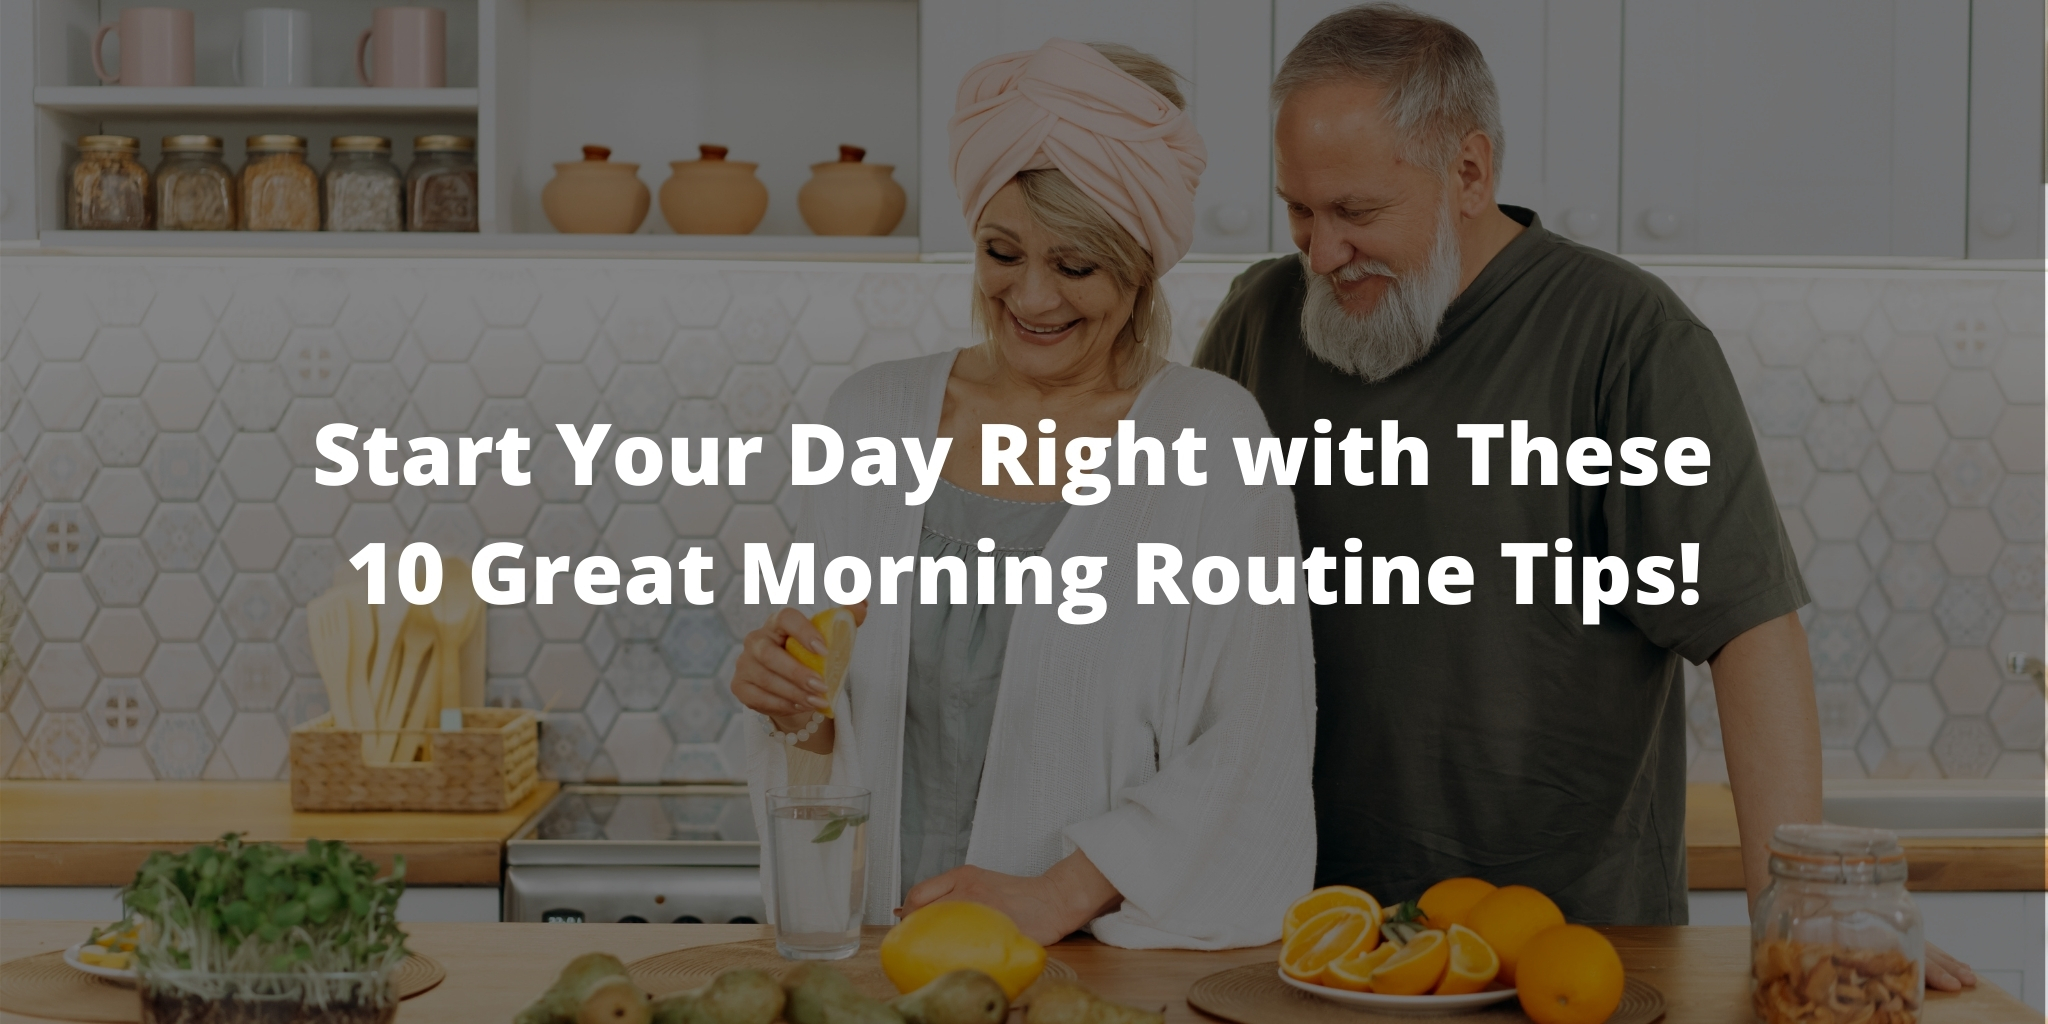 Start Your Day Right with These 10 Great Morning Routine Tips!